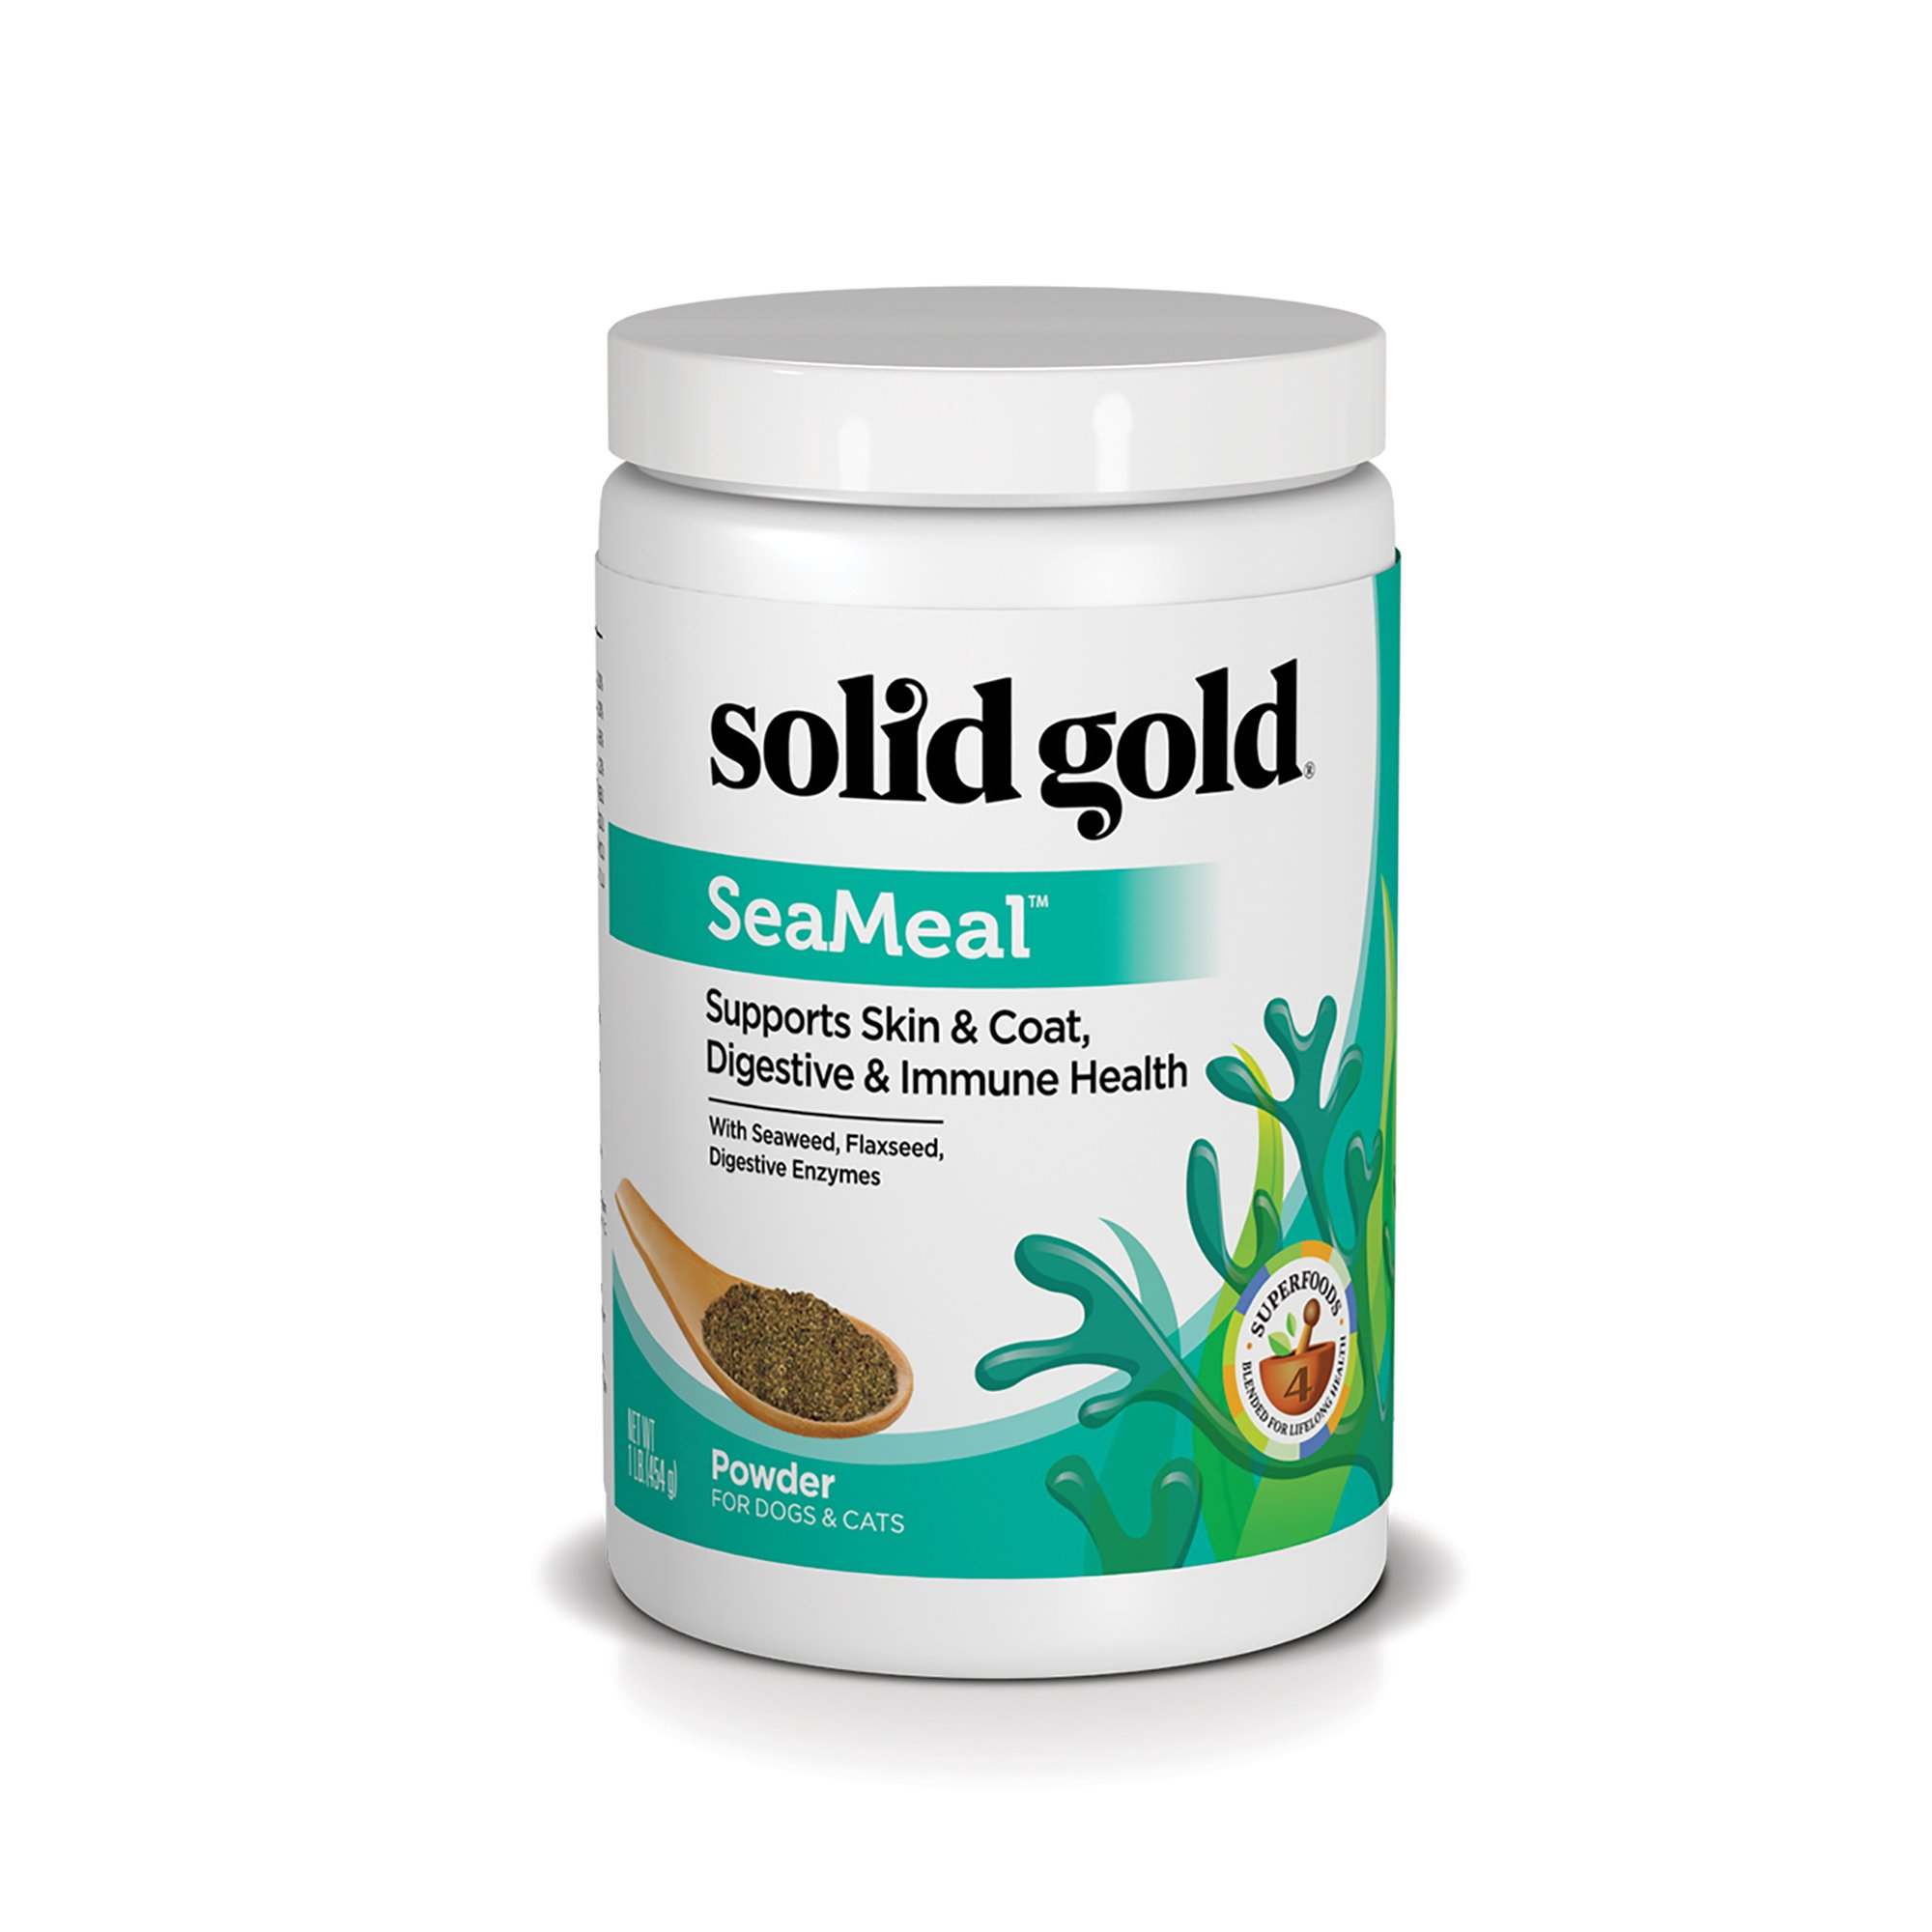 Solid Gold Skin & Coat, Digestive & Immune Health Dog & Cat Supplement; SeaMeal, Natural, Holistic Grain-Free Kelp-Based Chews and Powder Supplement